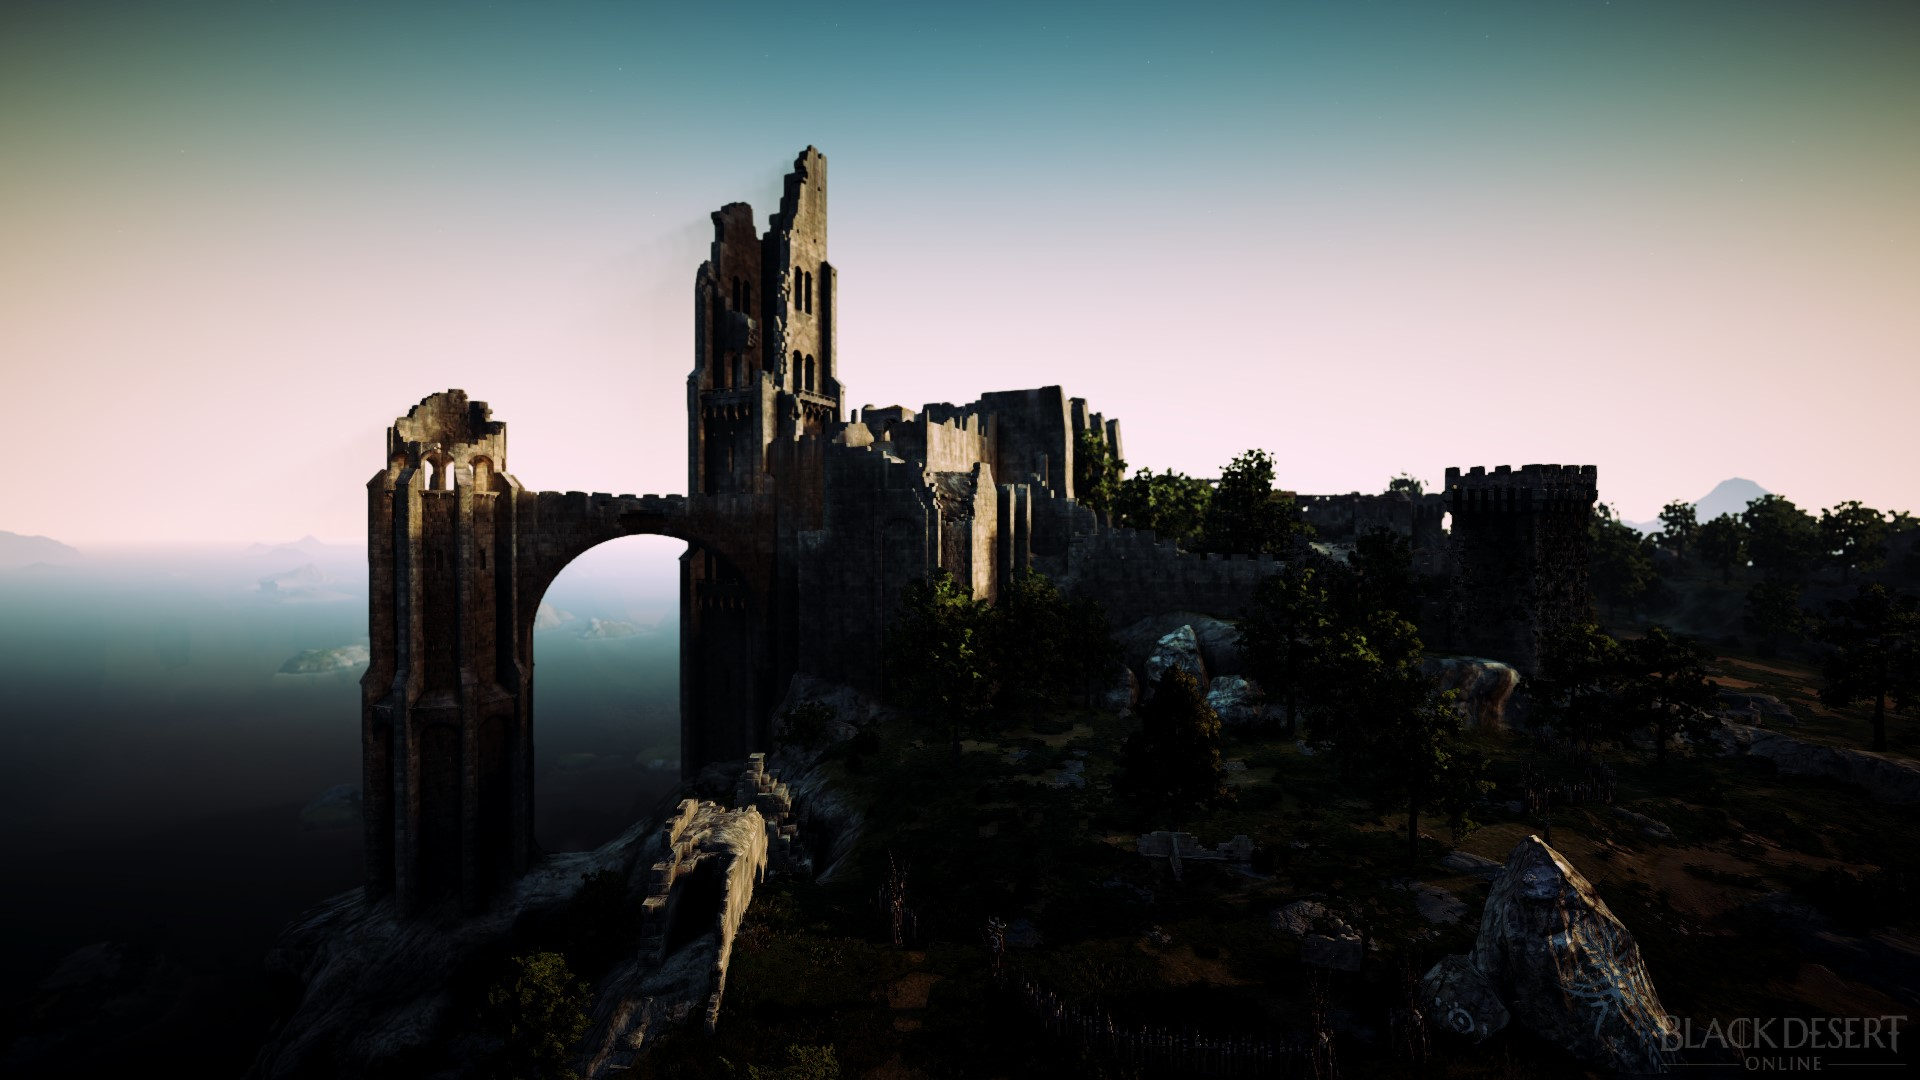 Cron Castle | Black Desert Wiki | FANDOM powered by Wikia